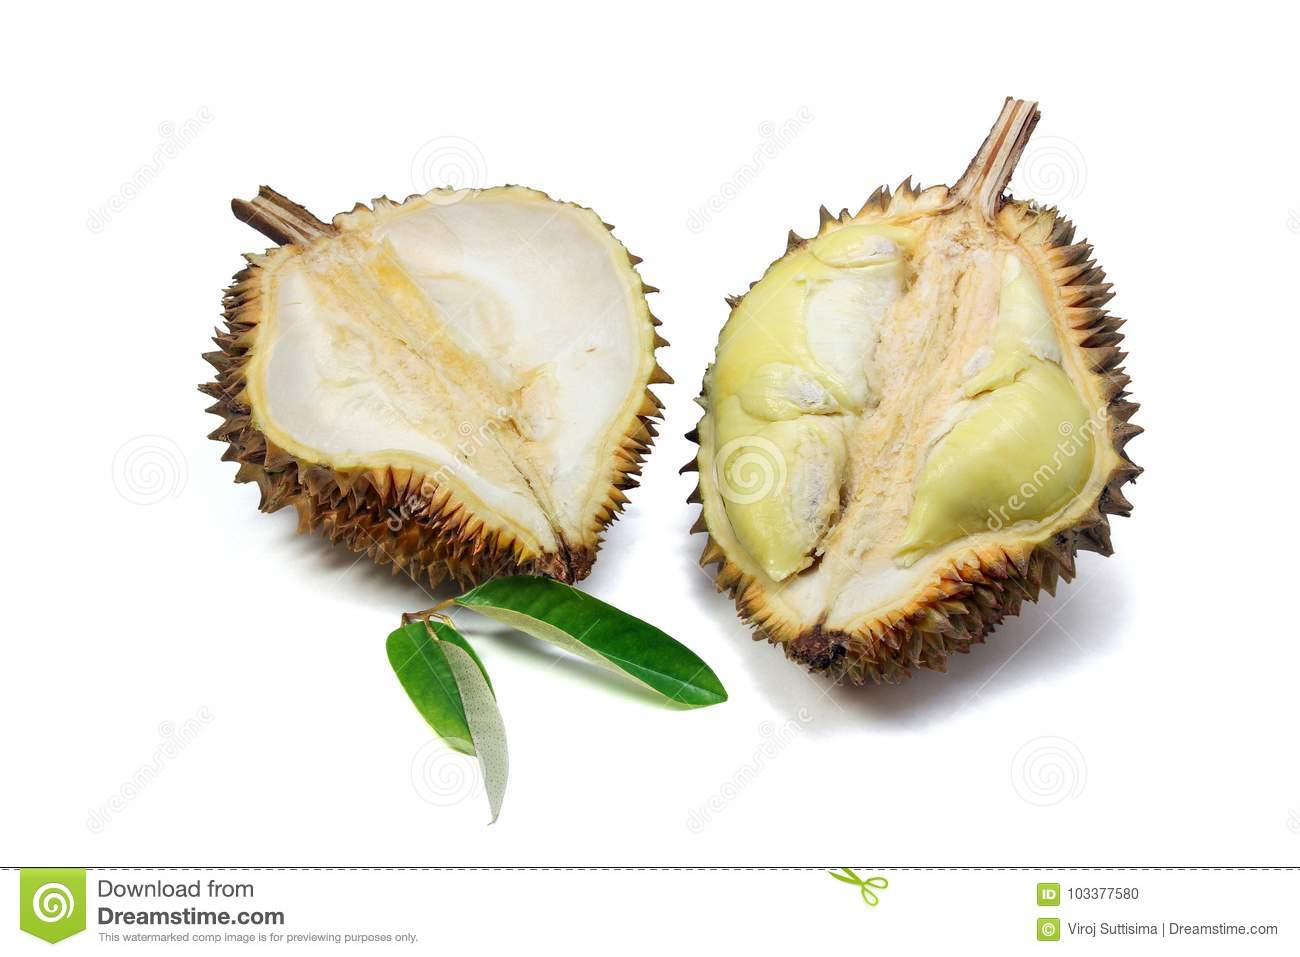 Ripe yellow flesh of Durian and Durian leaf on white background.